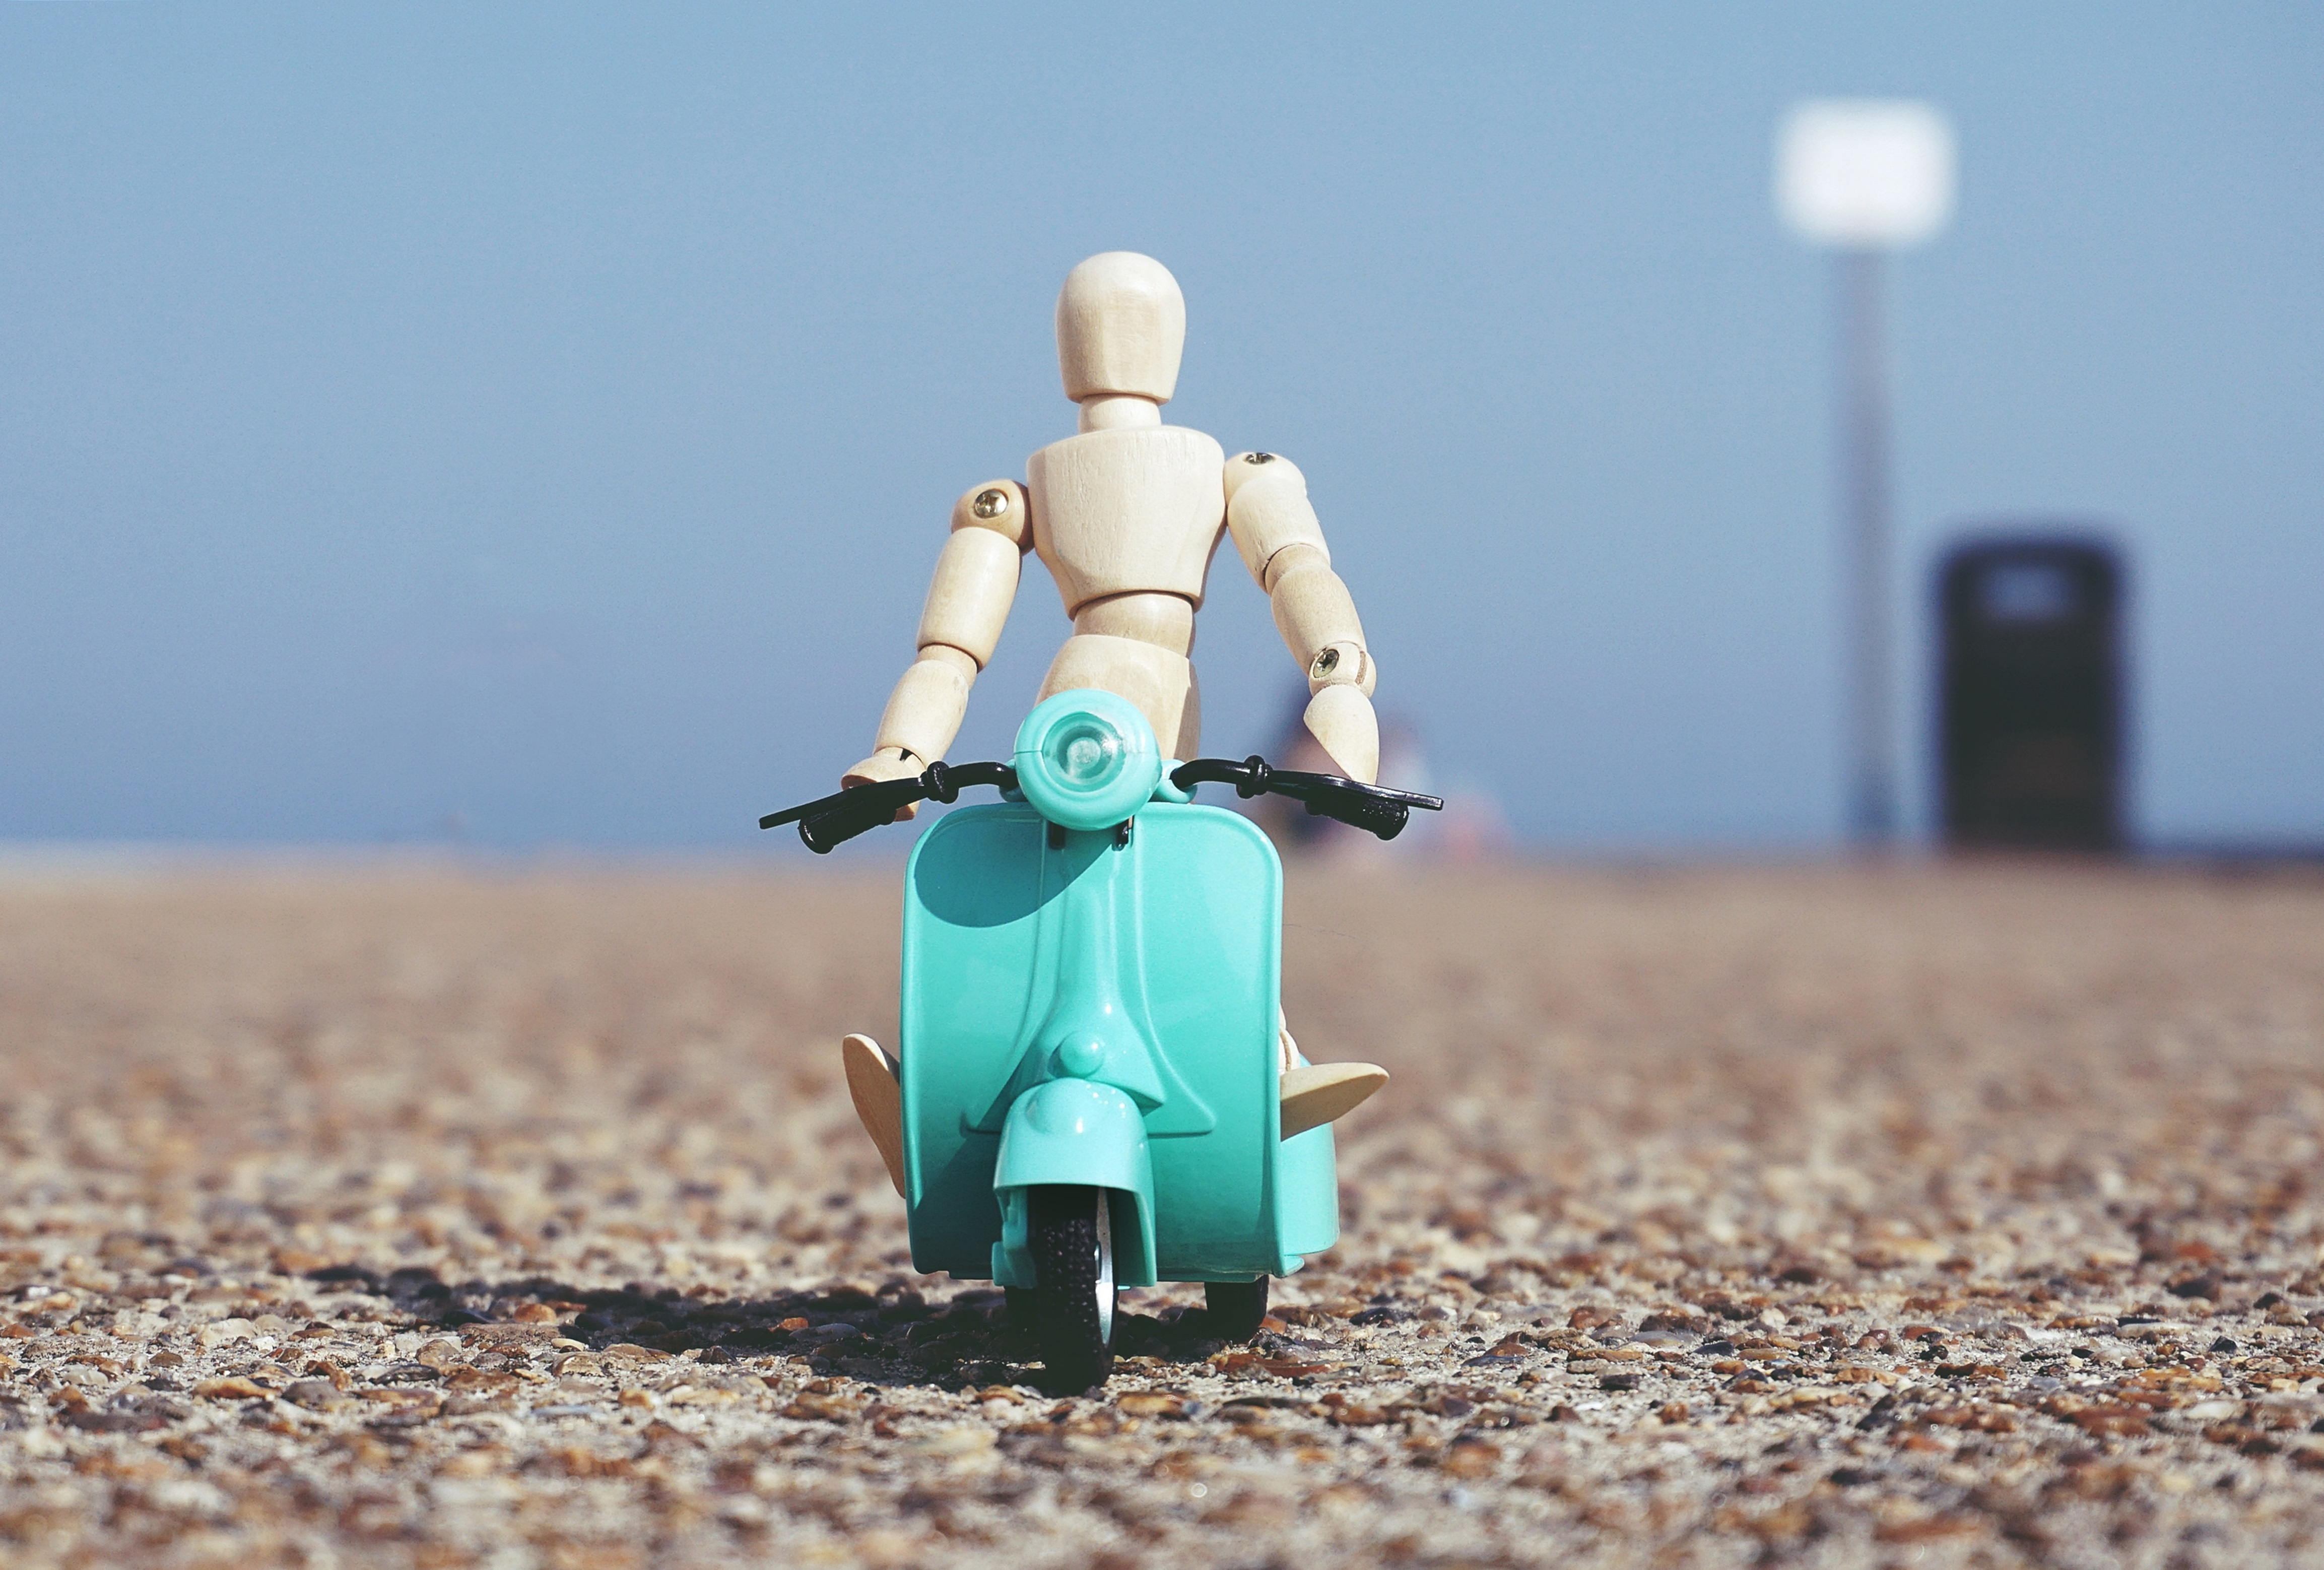 Robot Toy Riding A Scooter